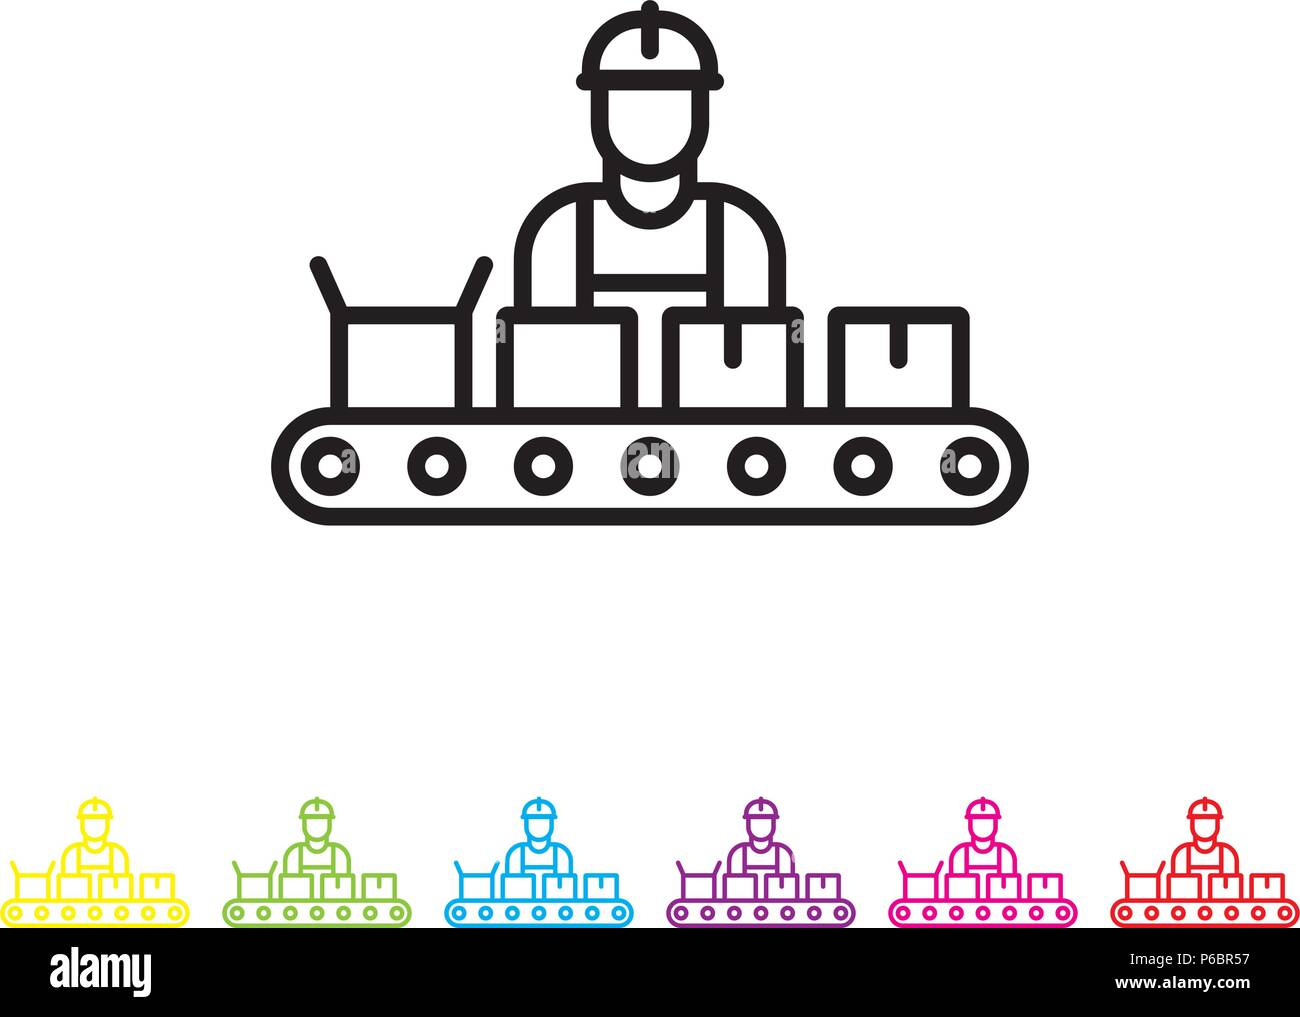 Assembly Icon: Conveyor Belt Factory Industry Icon Stock Photos